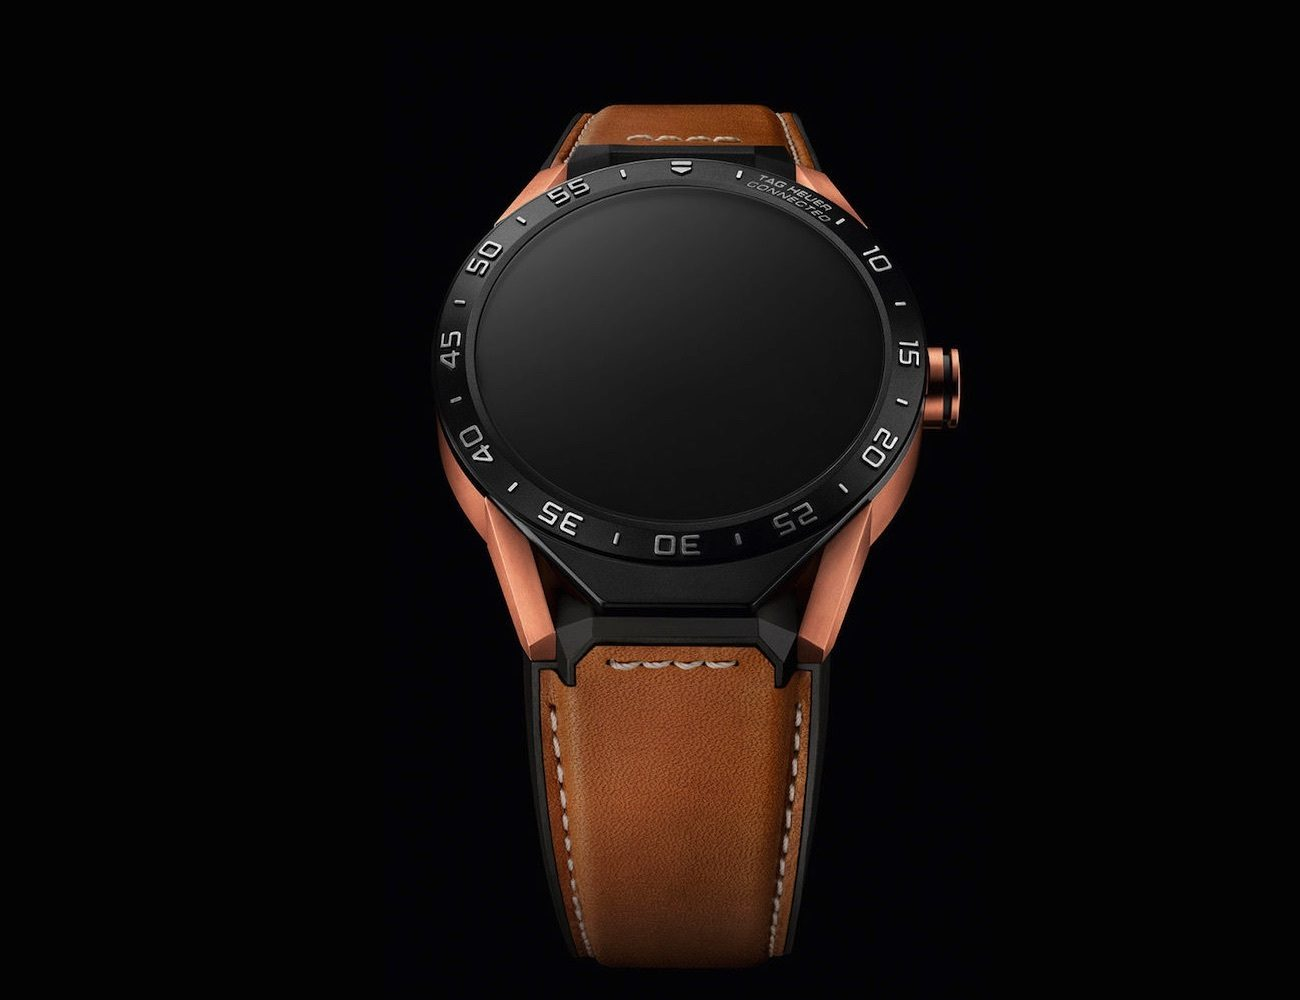 Rose Gold Connected Watch by Tag Heuer » Gadget Flow